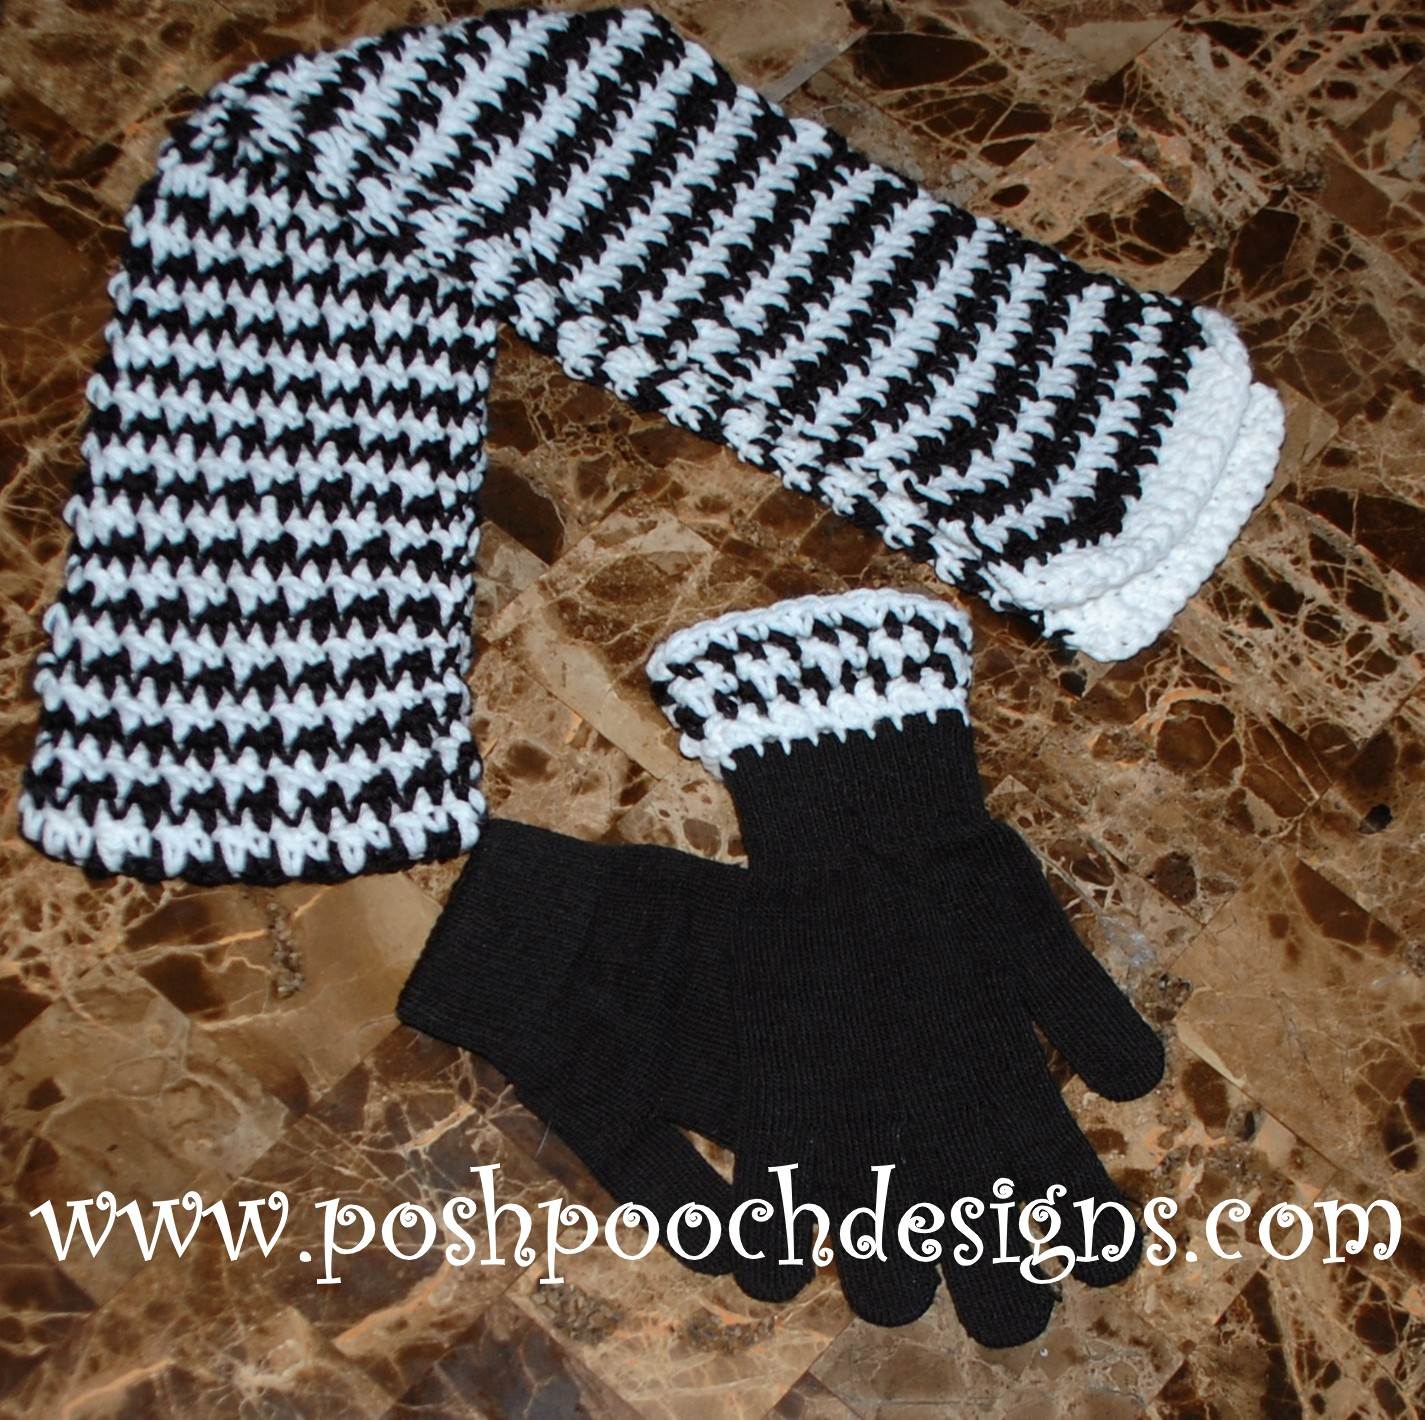 Crochet Stitch Houndstooth : ... Designs Dog Clothes: Hounds Tooth Scarf and Glove Crochet Patterns